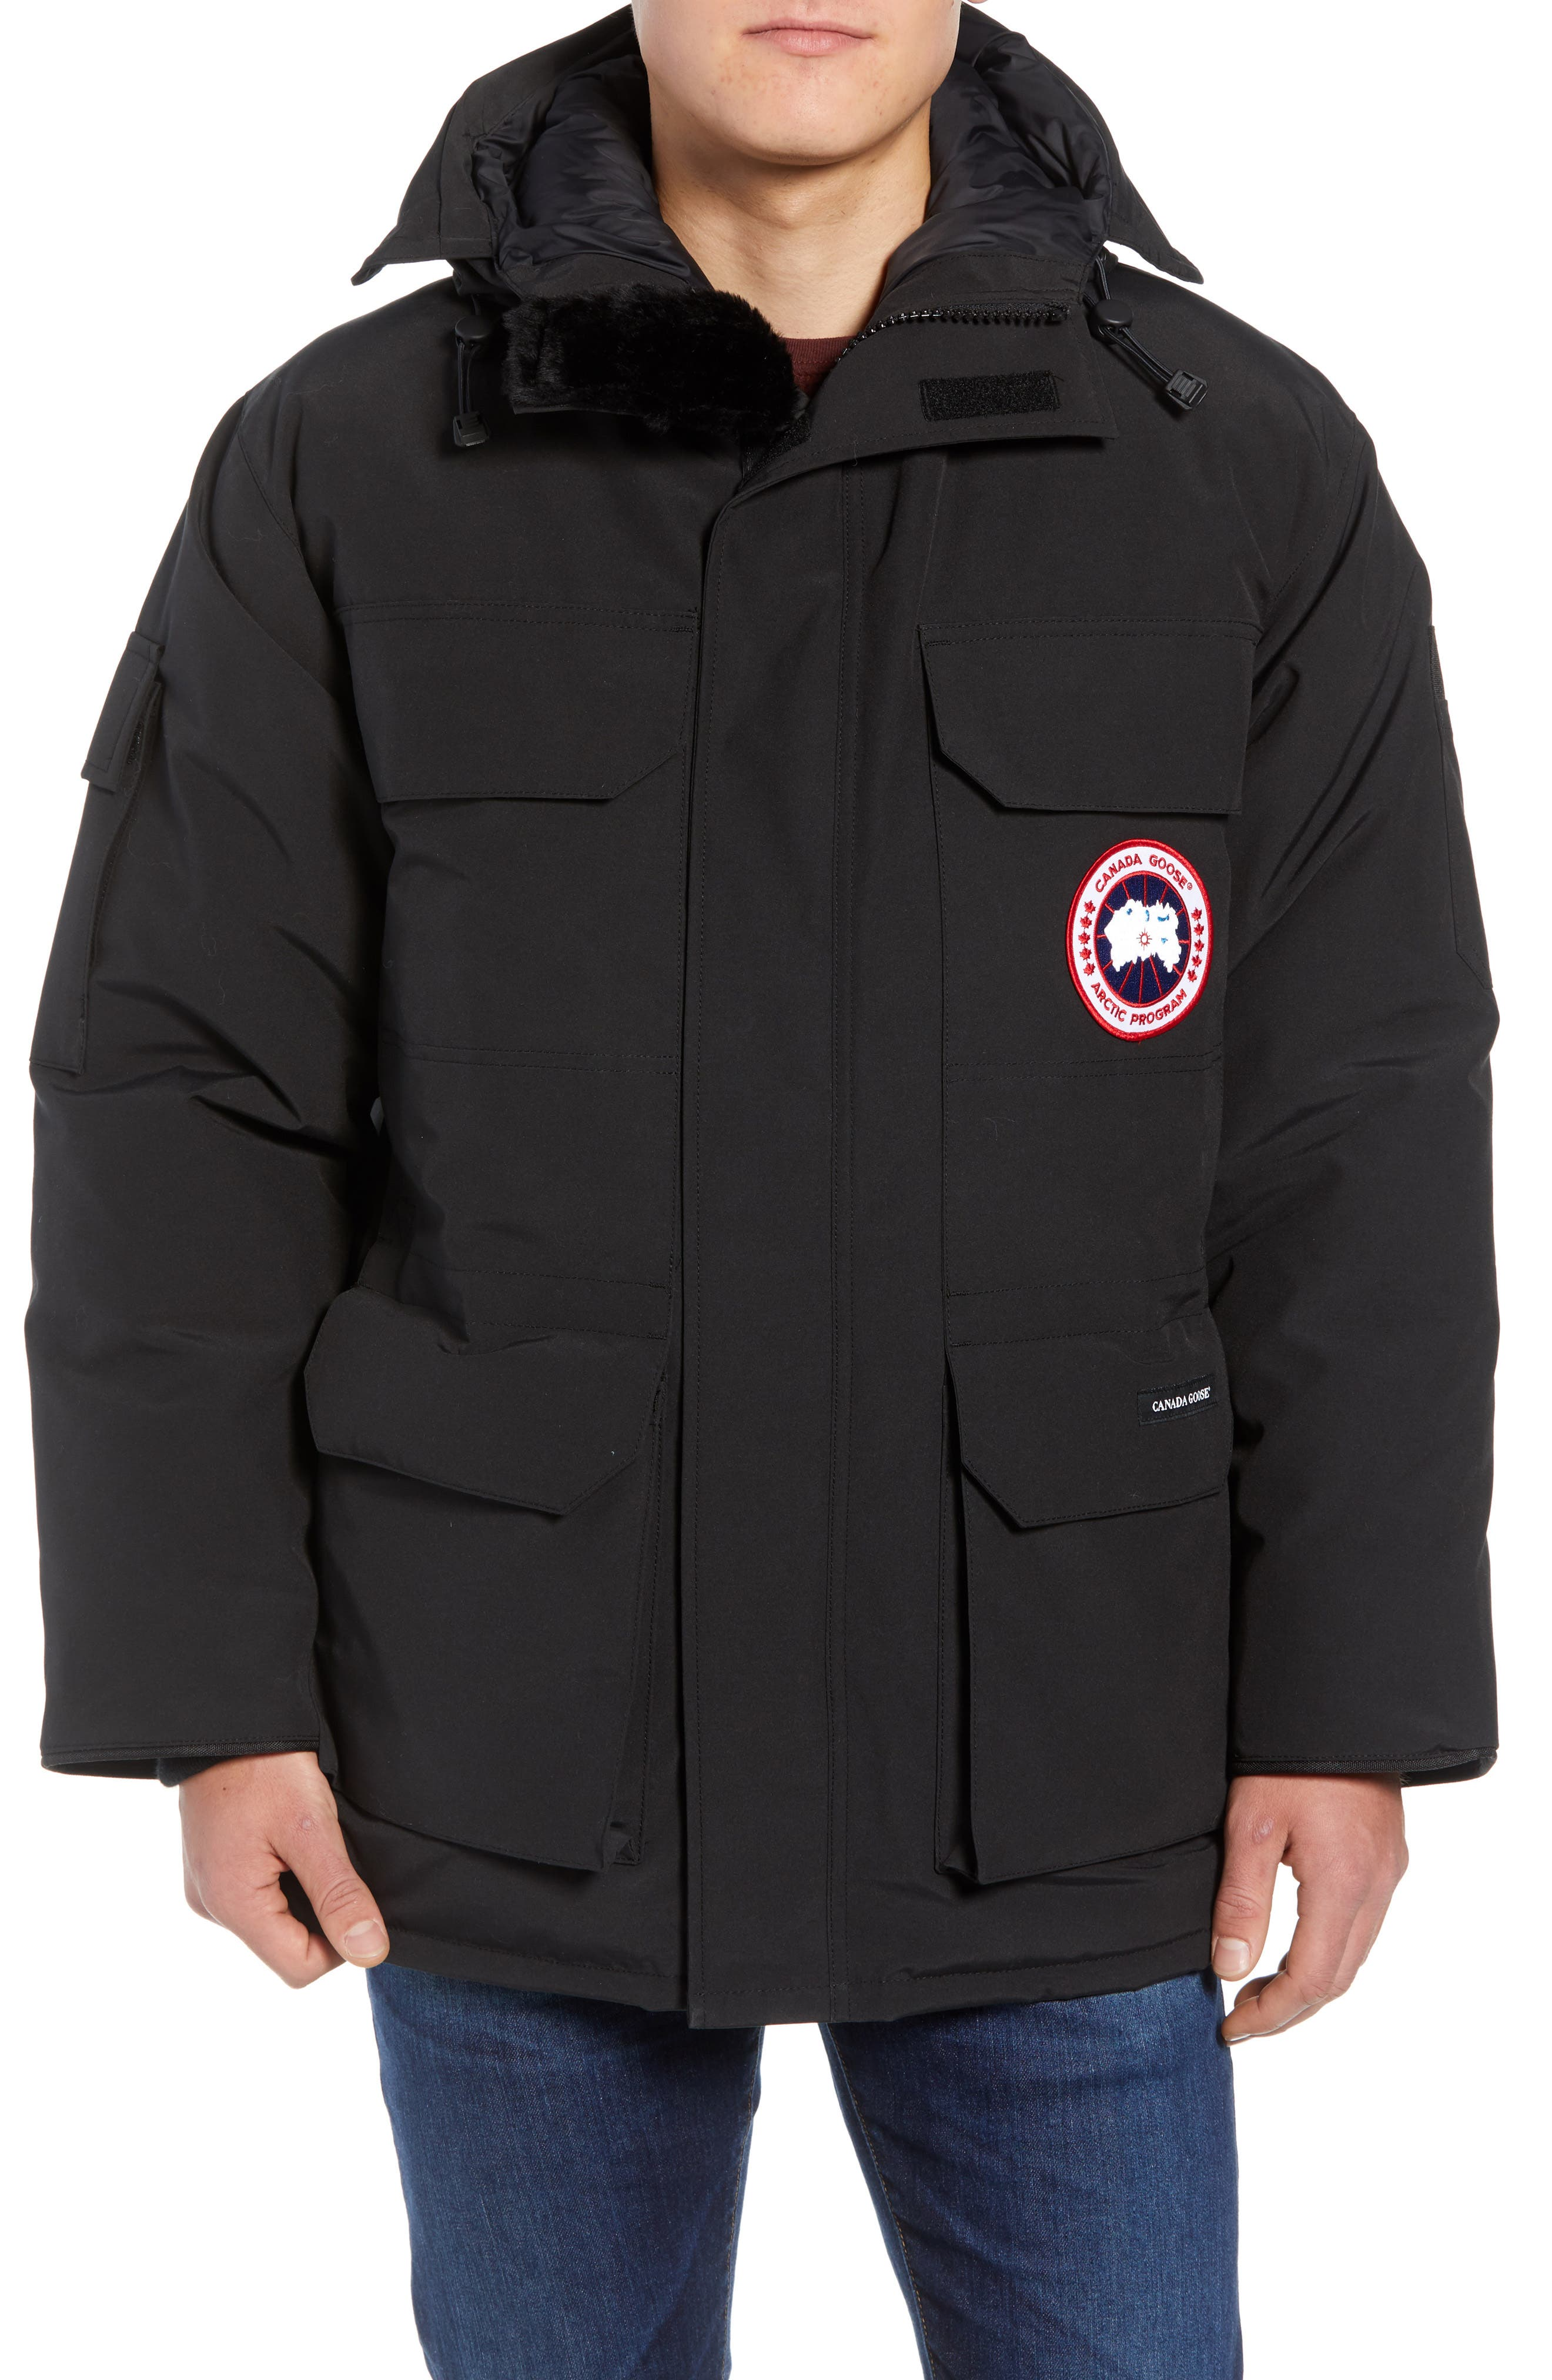 PBI Expedition Regular Fit Down Parka with Genuine Coyote Fur Trim,                             Alternate thumbnail 4, color,                             001